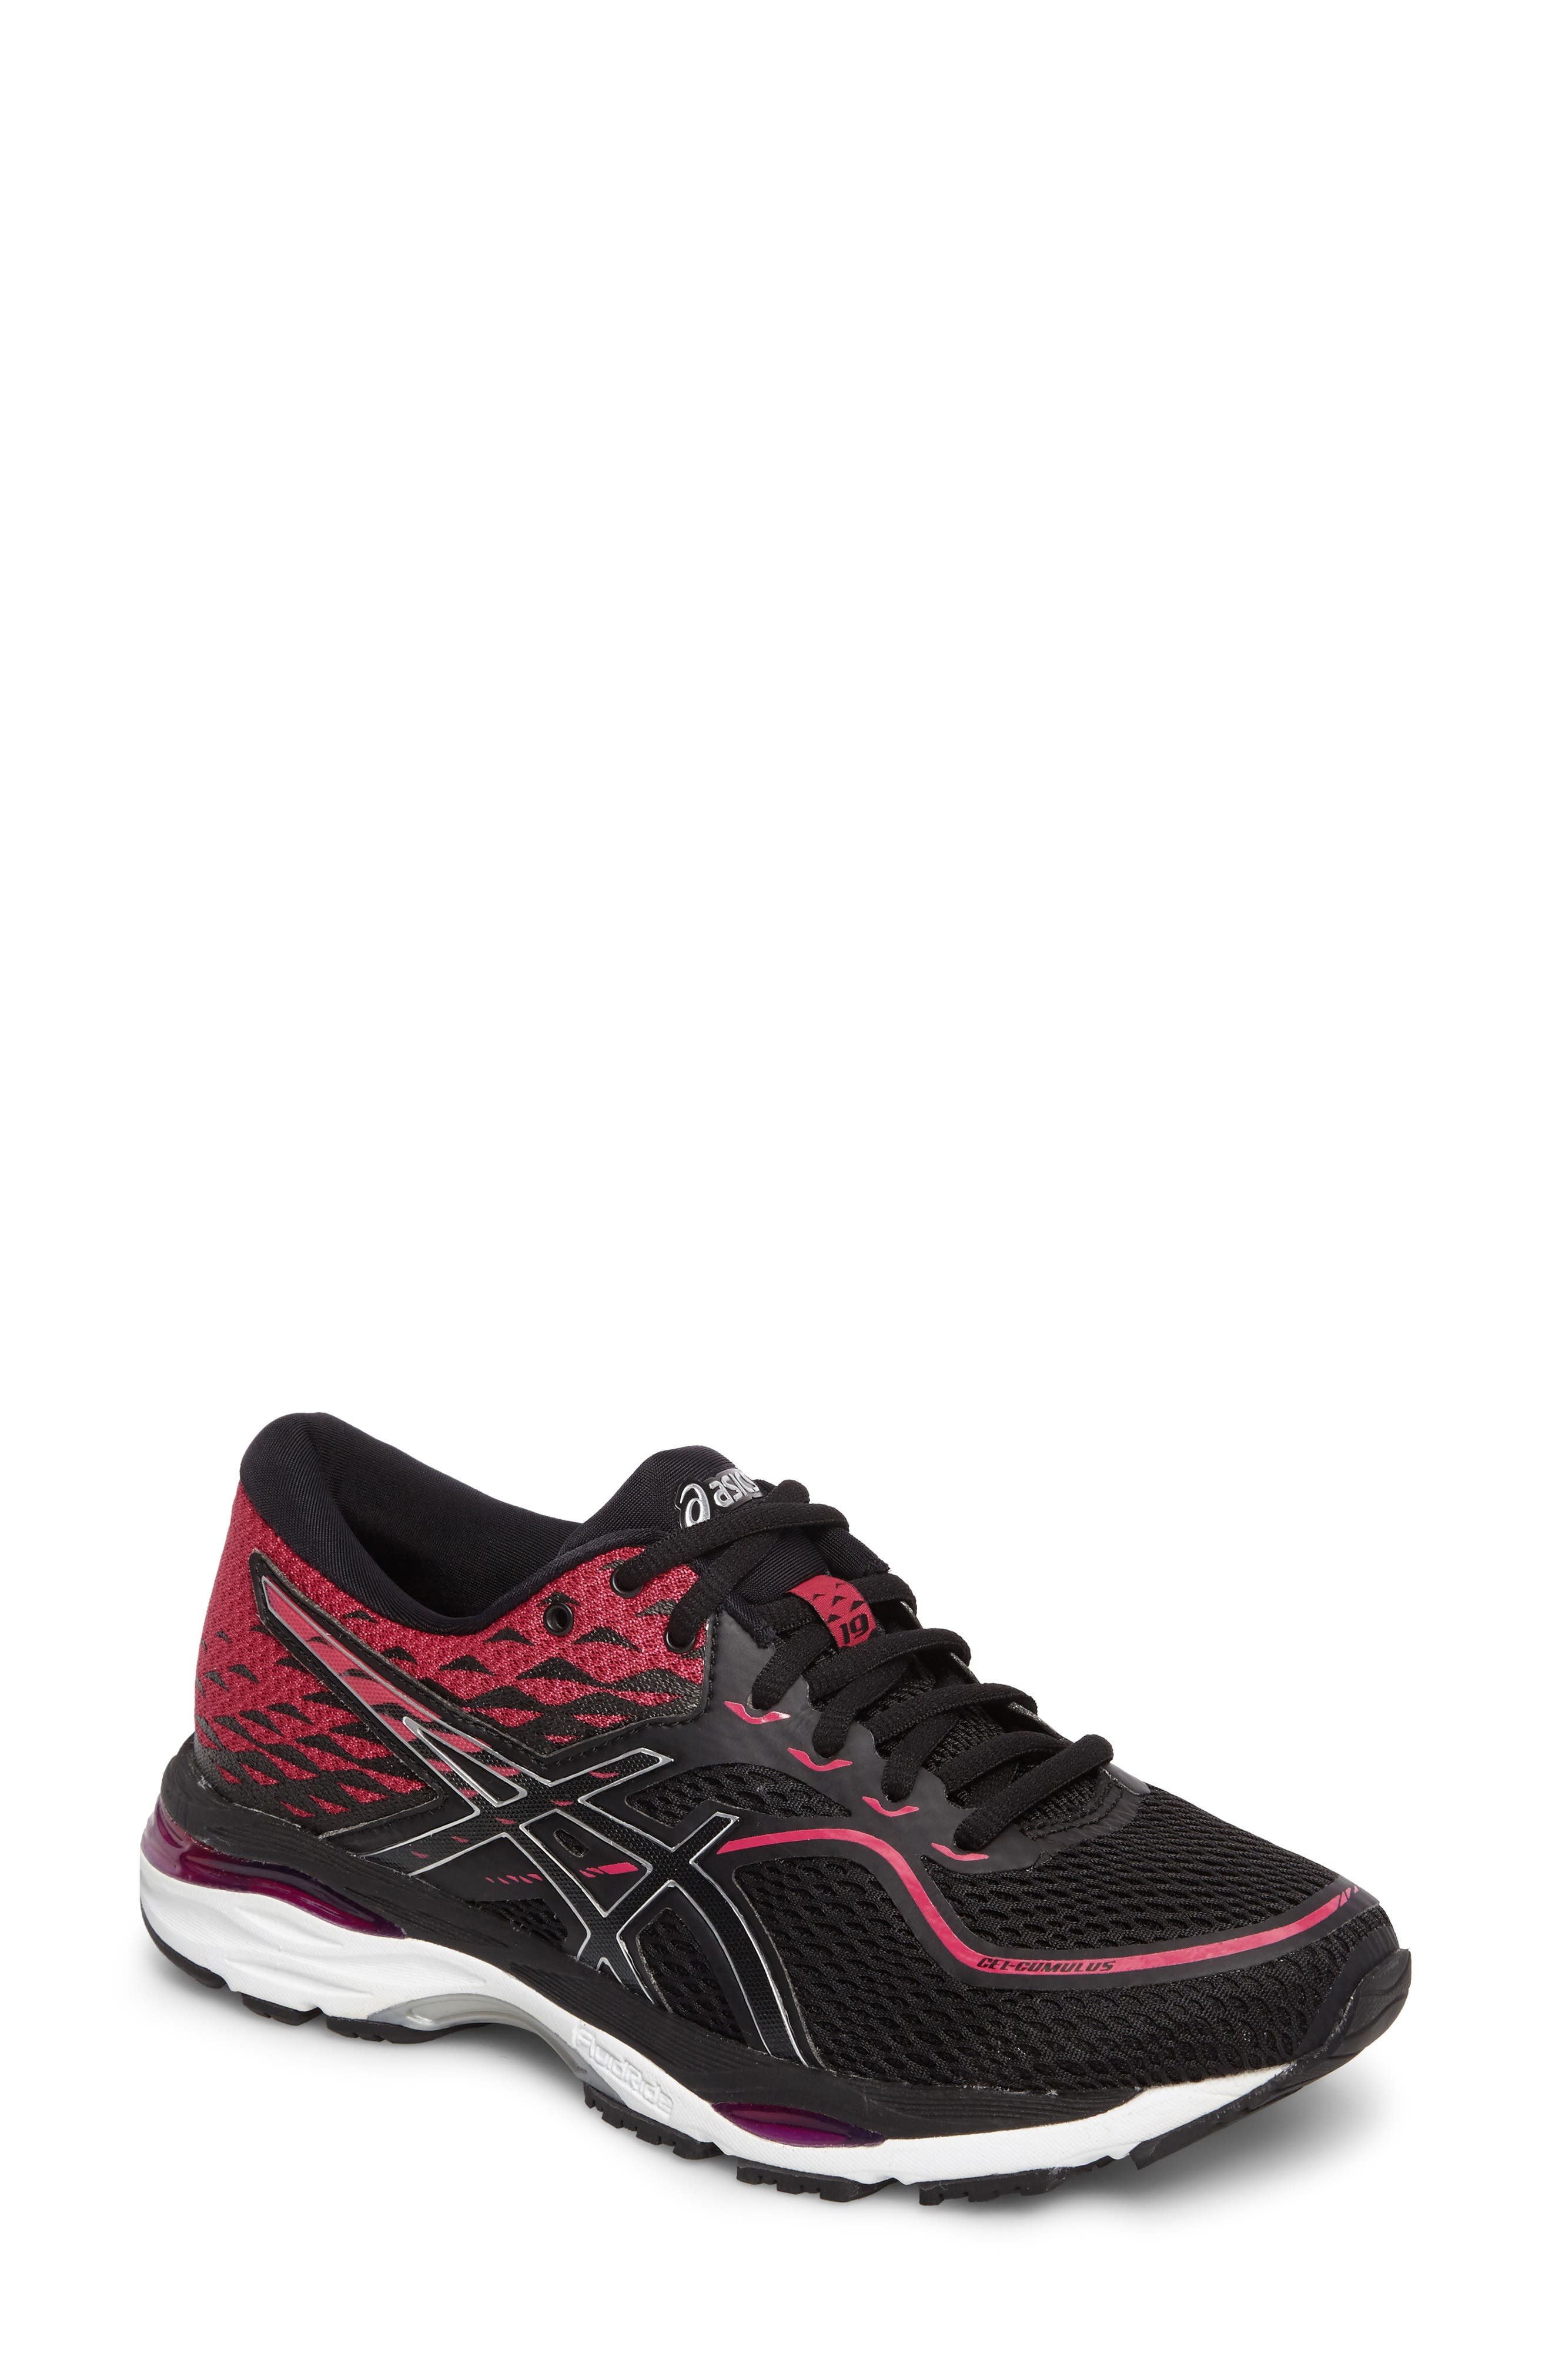 Gel Cumulus 19 2A Running Shoe,                         Main,                         color, Black/ Silver/ Pink Peacock